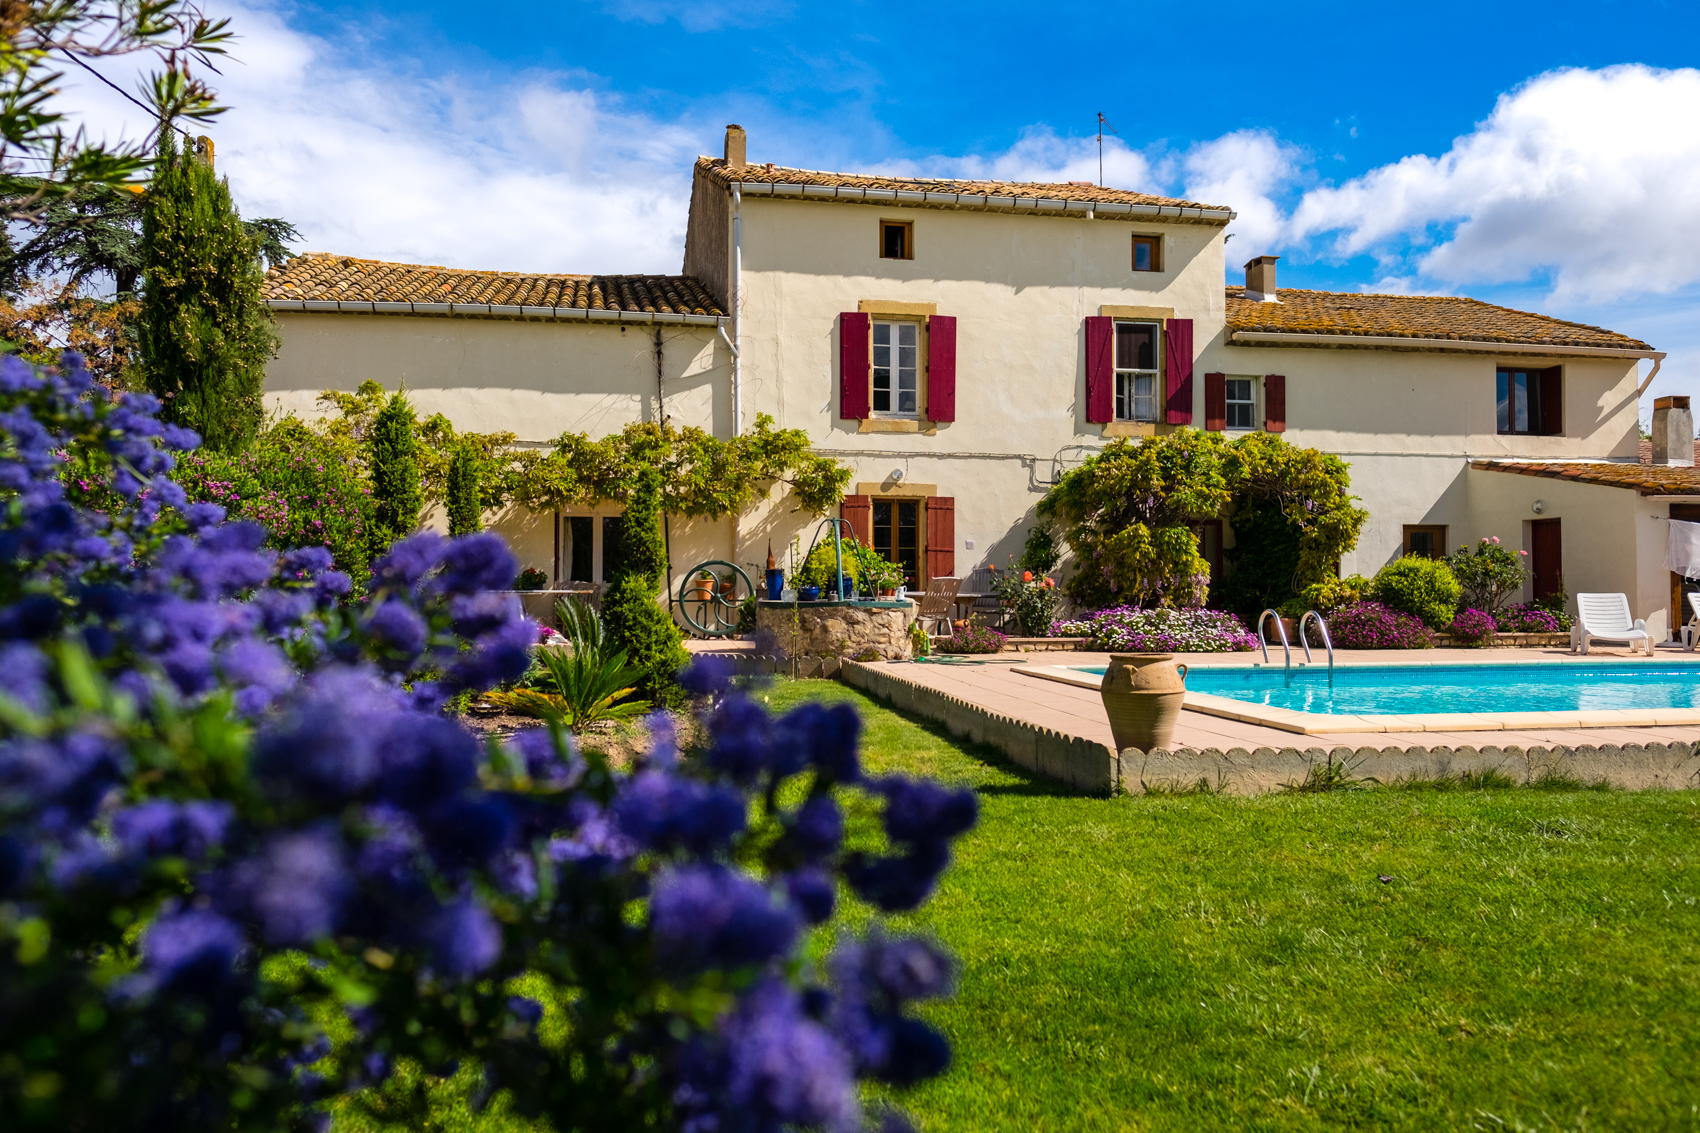 Le Fitou - 3 bedroom Gite with garden and pool near Canal du Midi in Languedoc